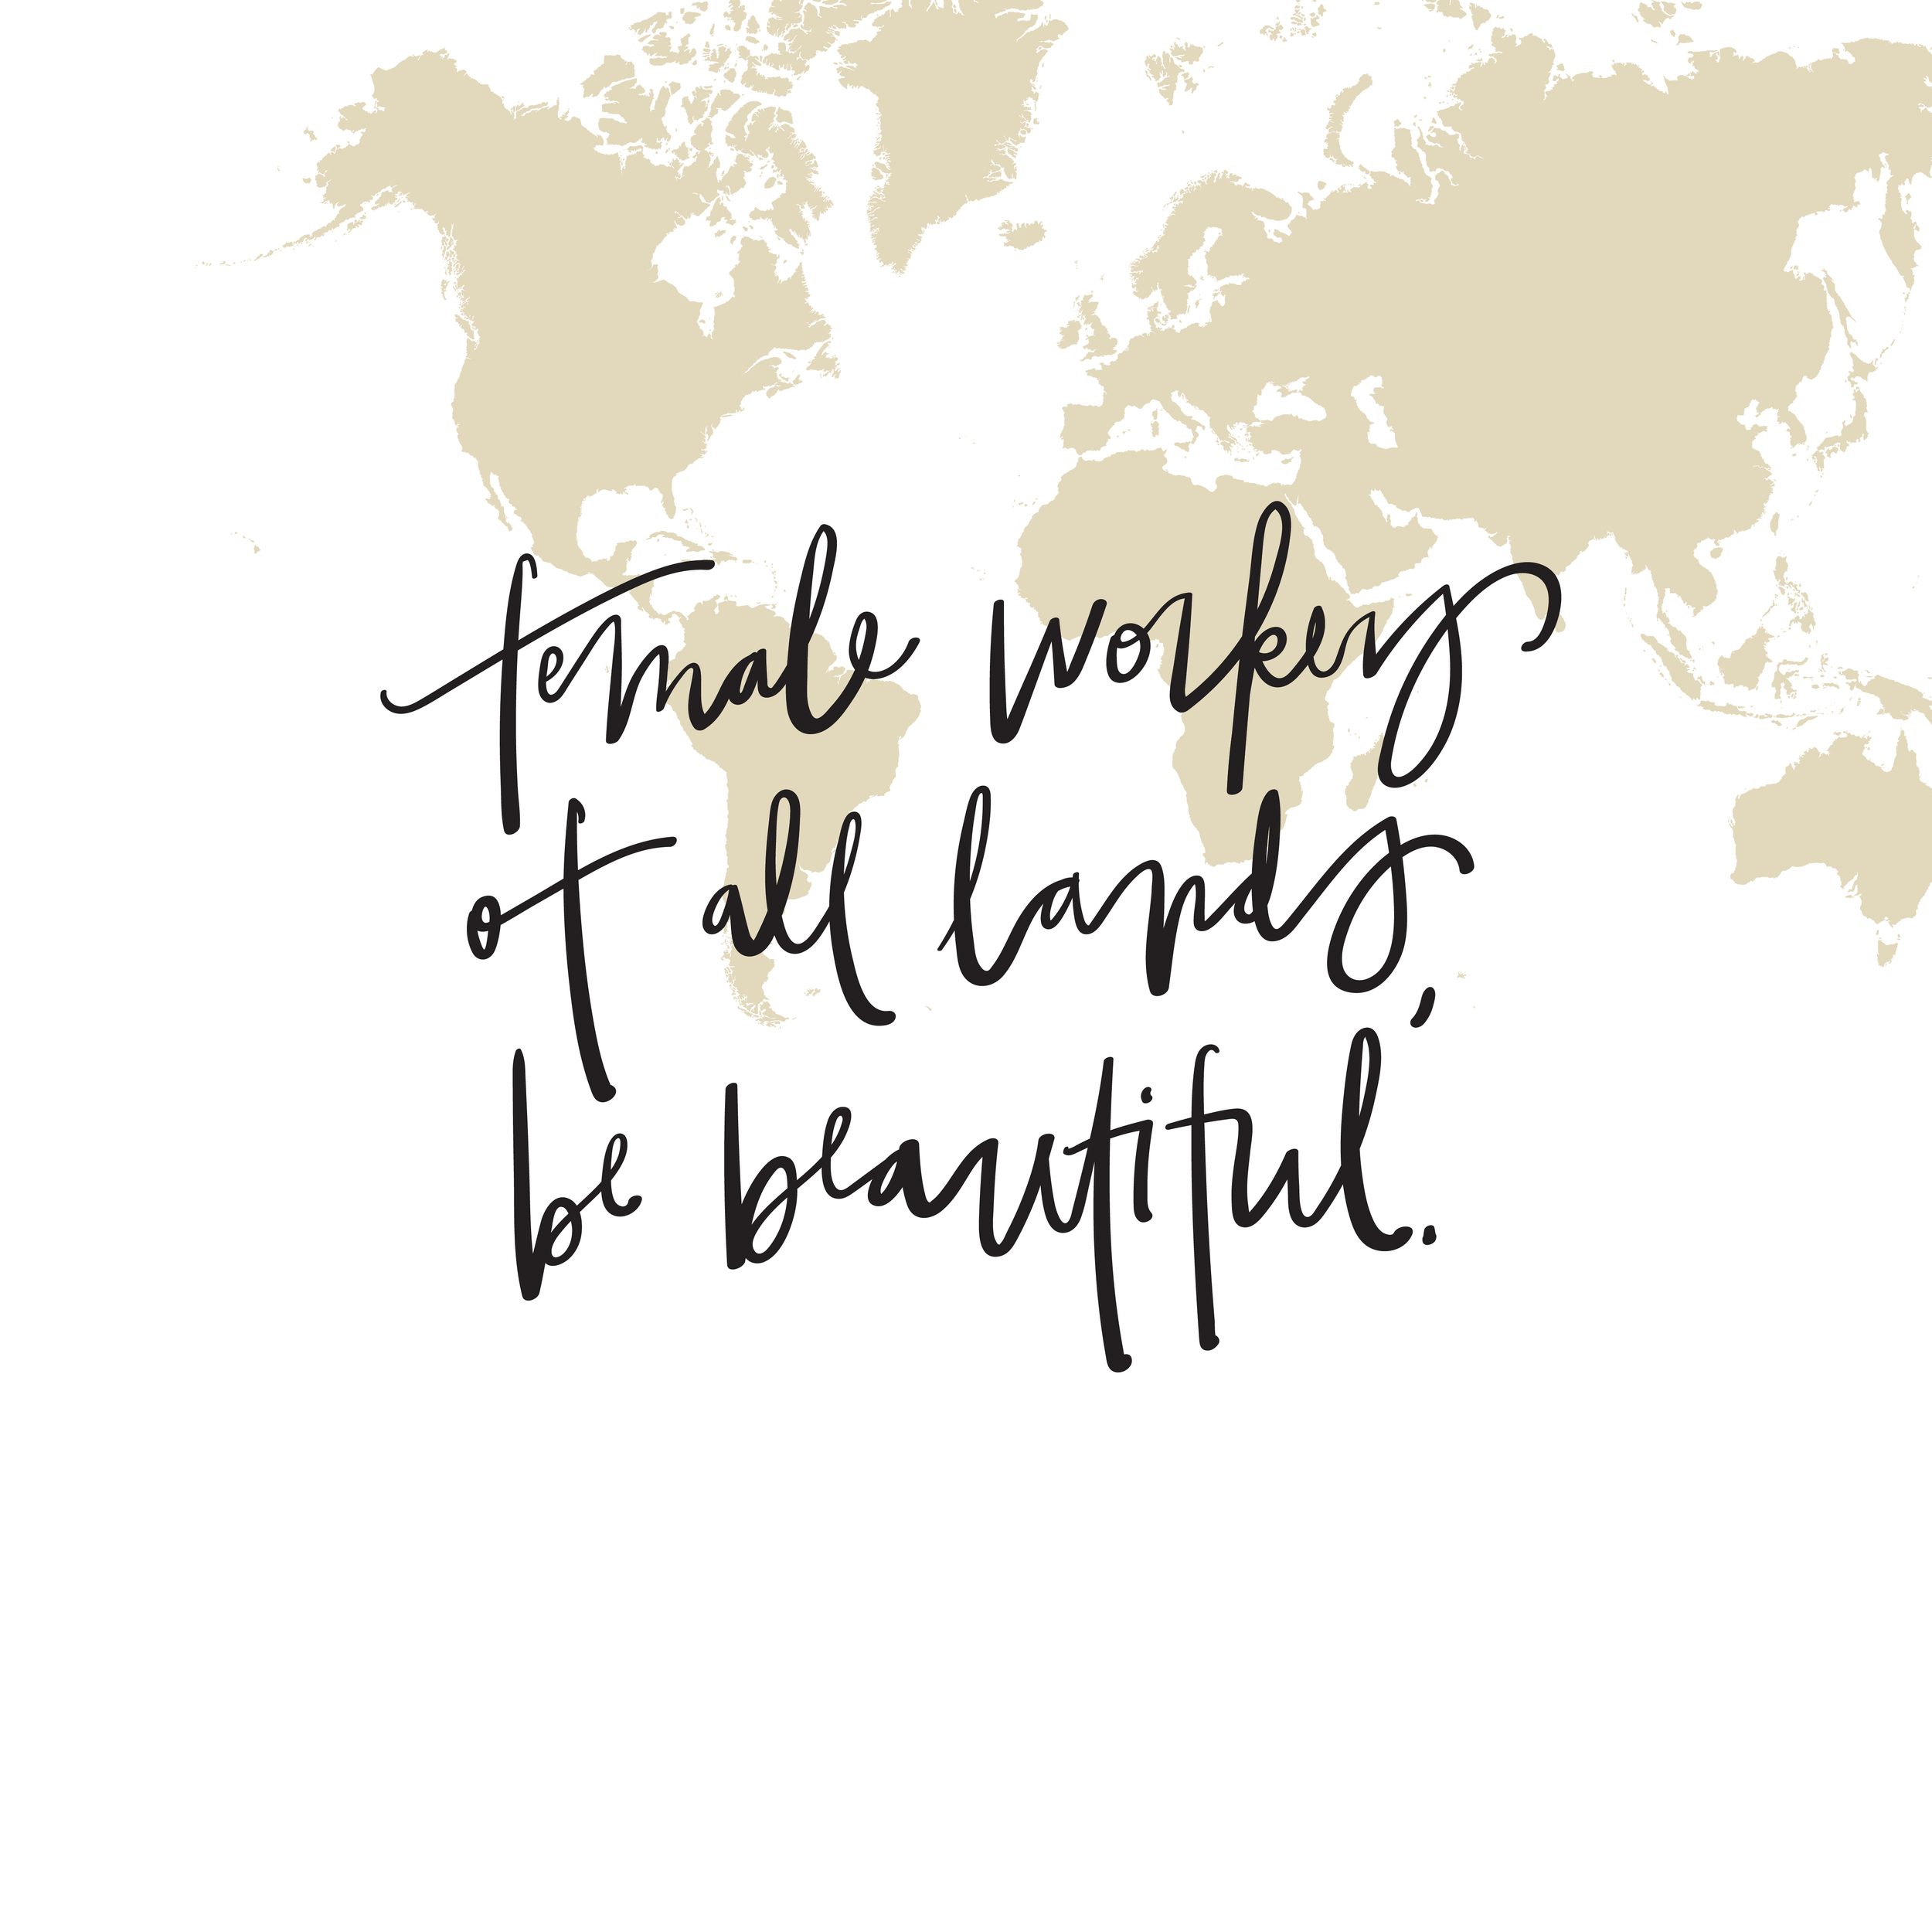 female-workers-of-all-lands-be-beautiful-hand-lettering-world-map-design-x-five